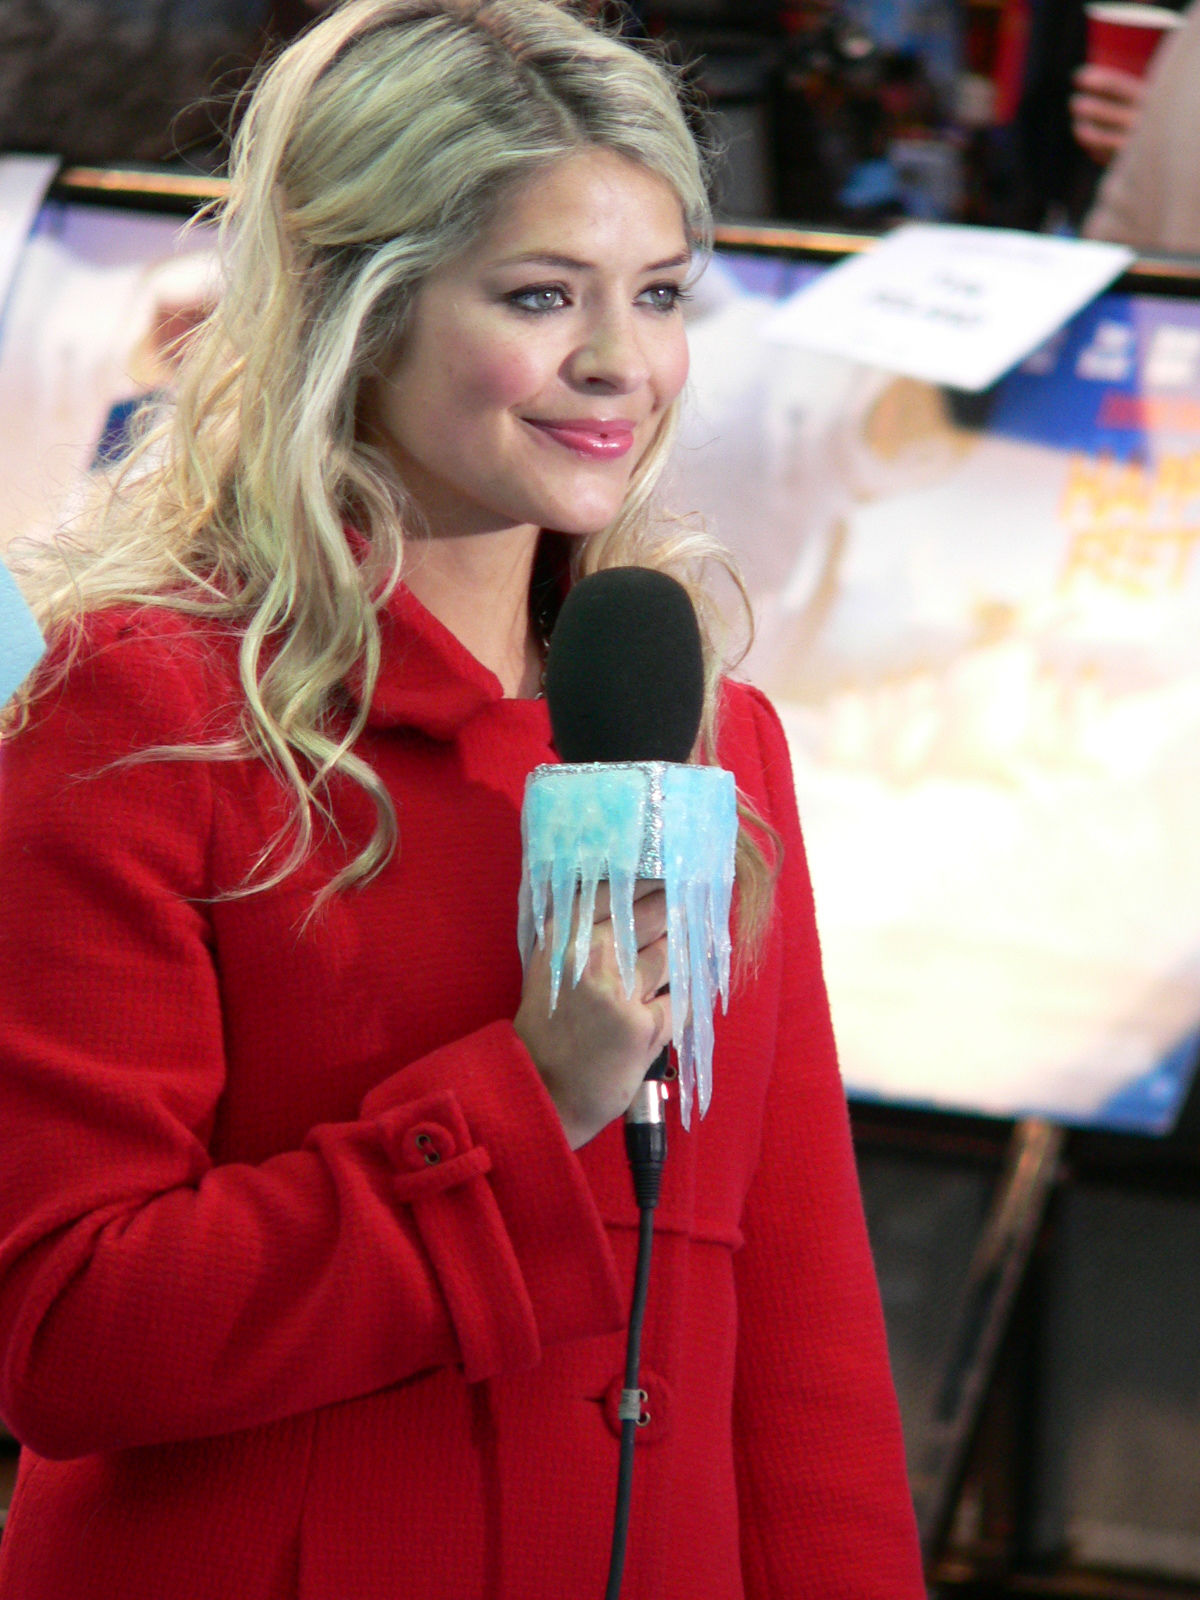 Photo of Holly Willoughby: English television presenter and fashion model